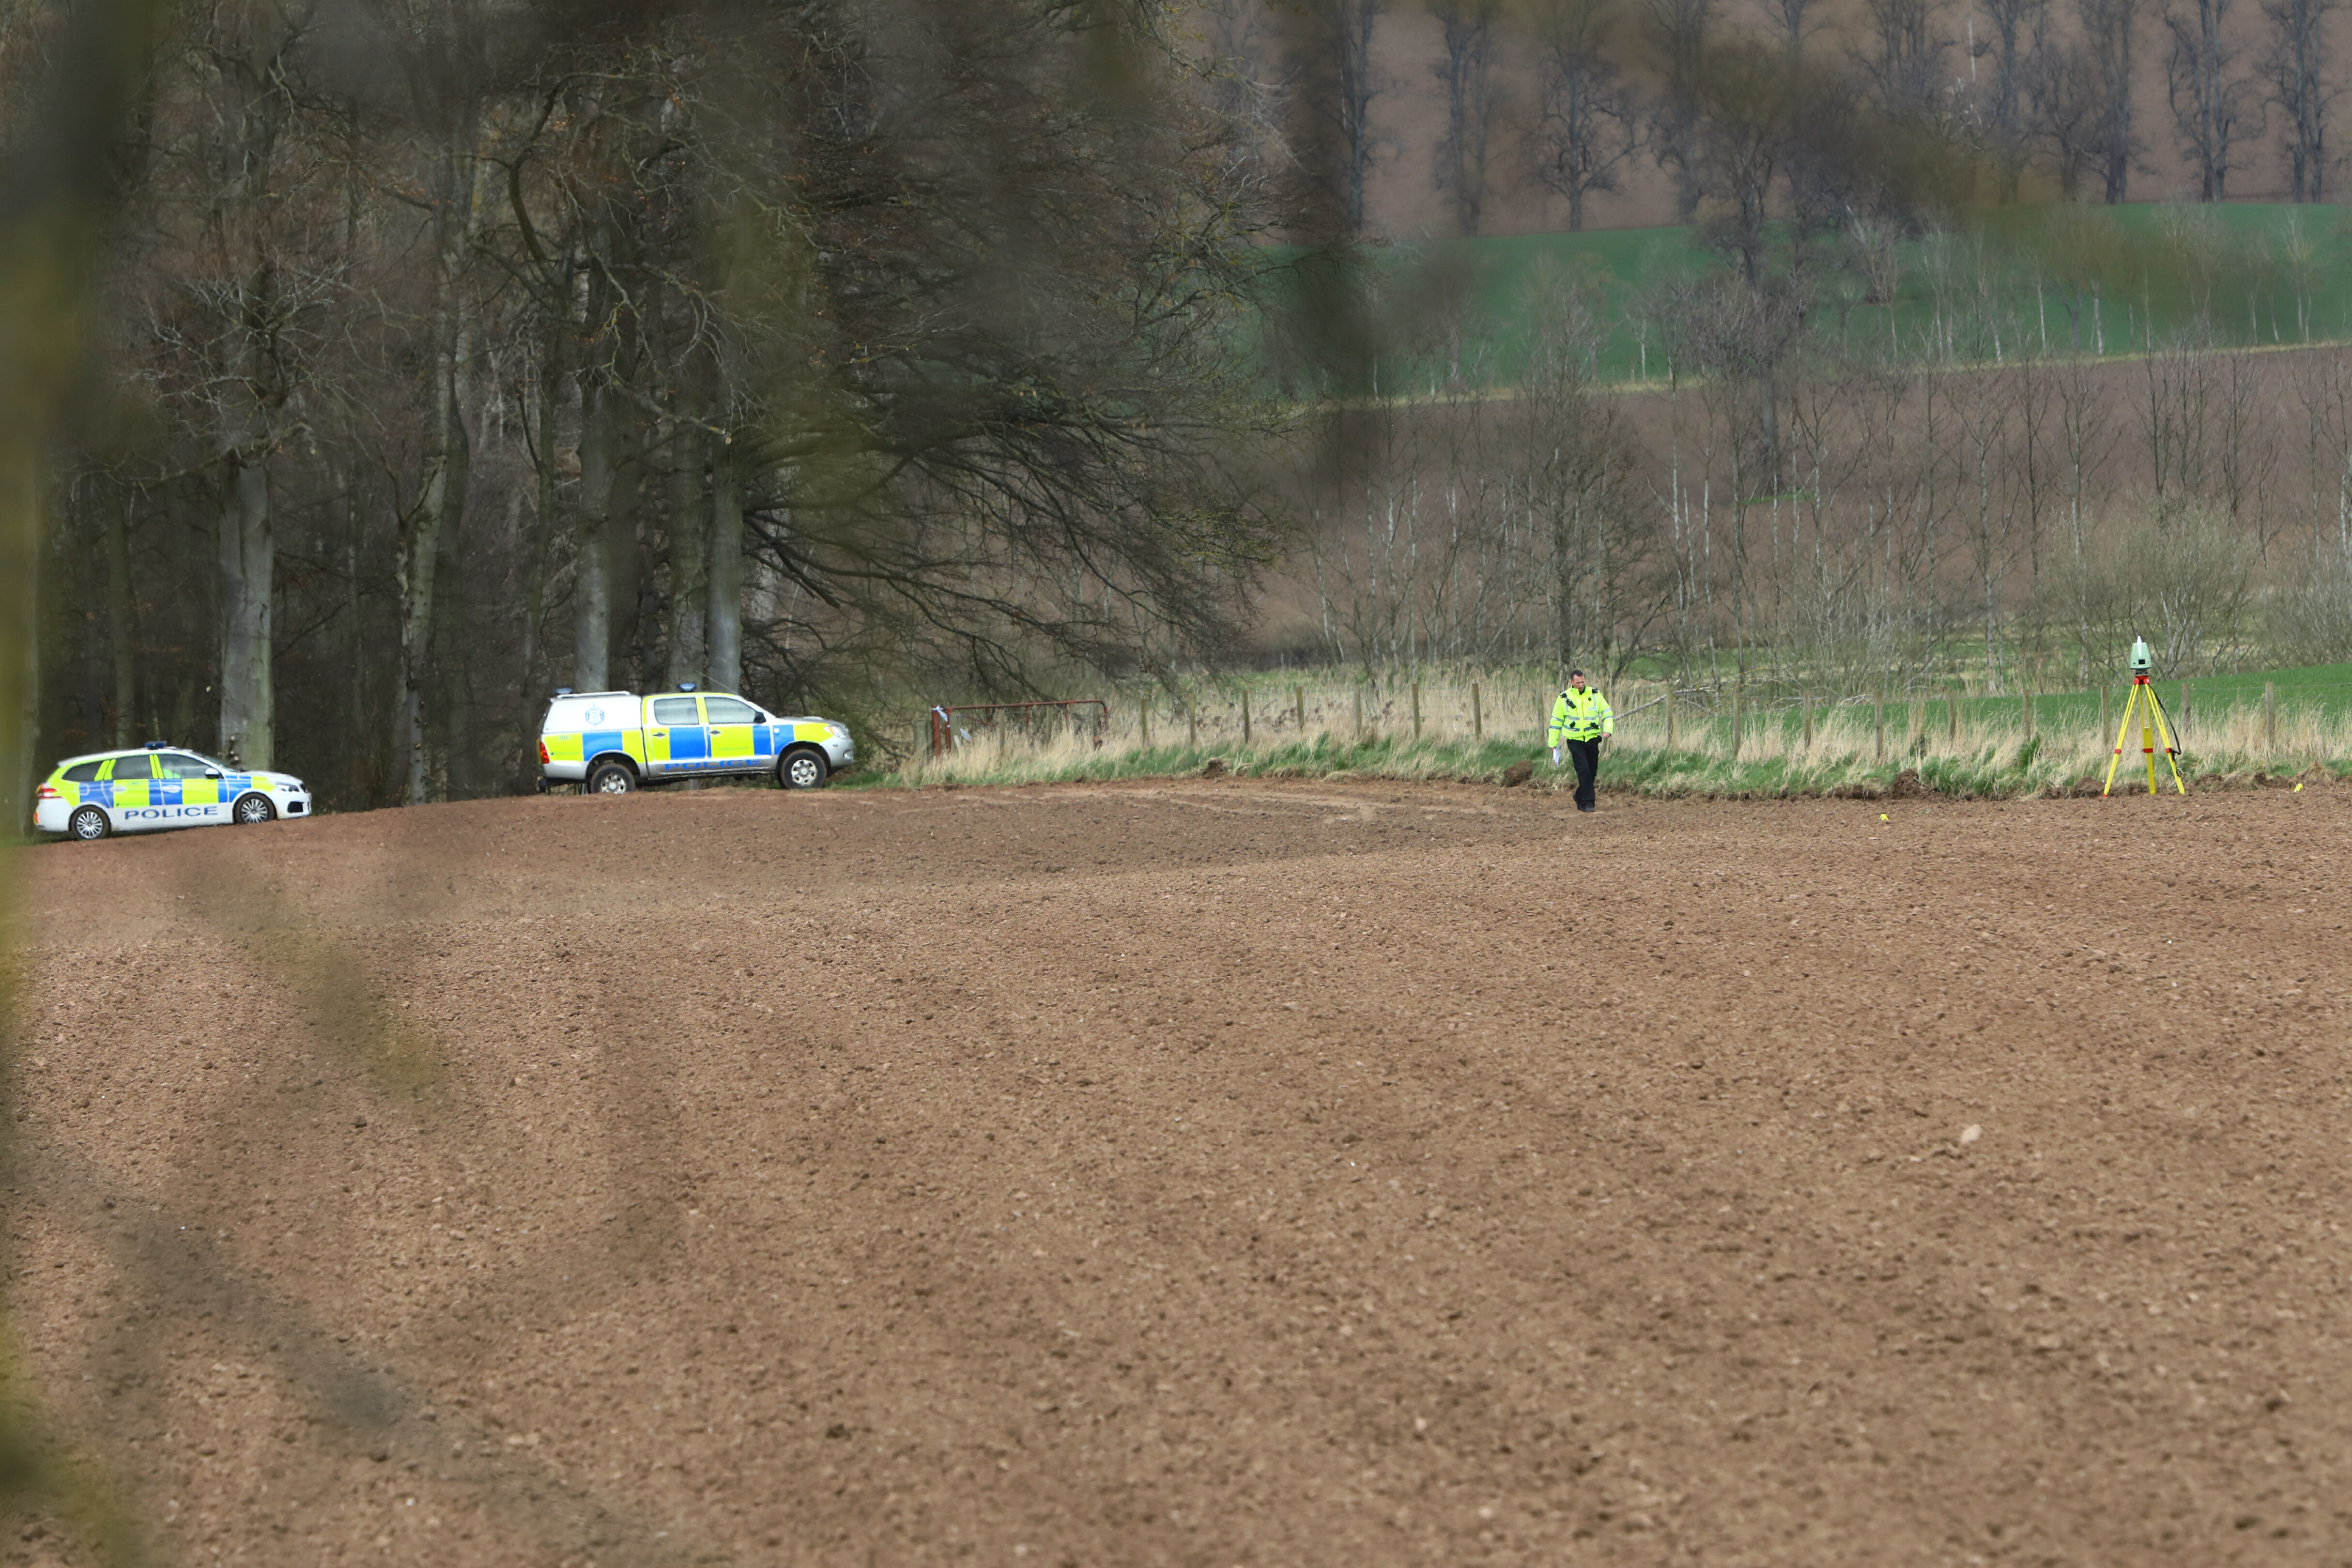 The incident occurred on the Rossie Estate, near Inchture